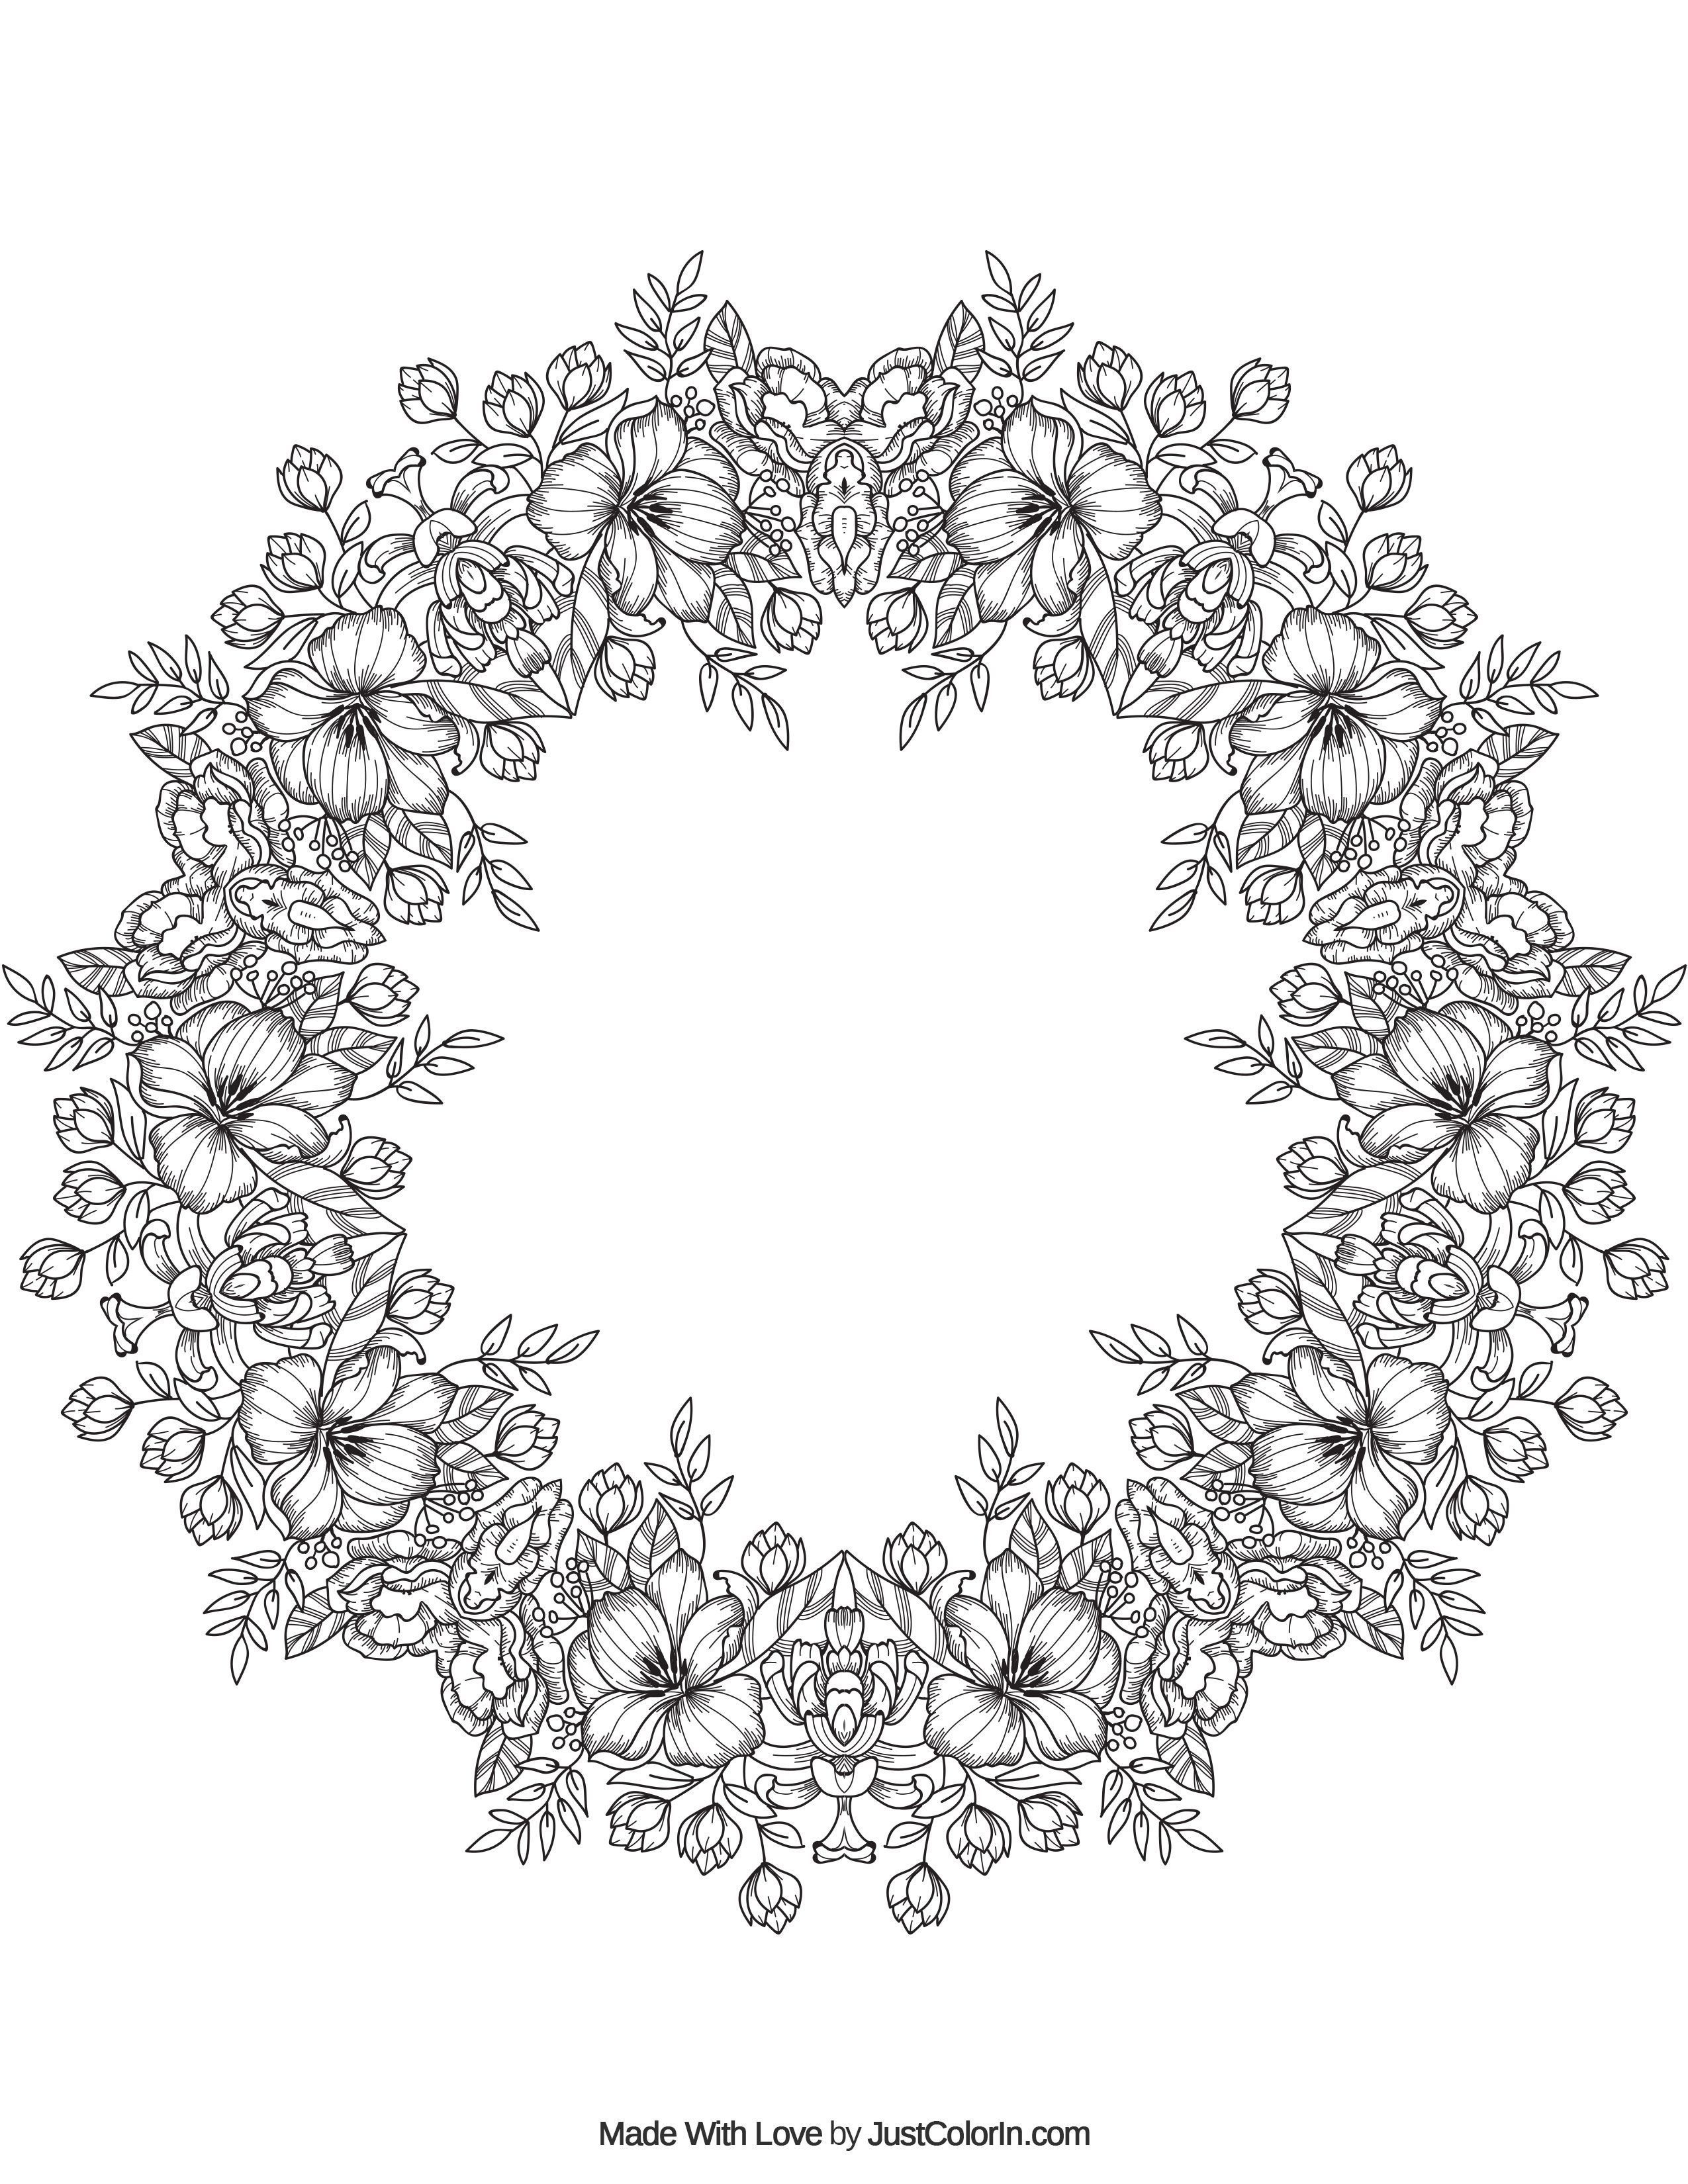 Flower Crown Mandala From JustColorin